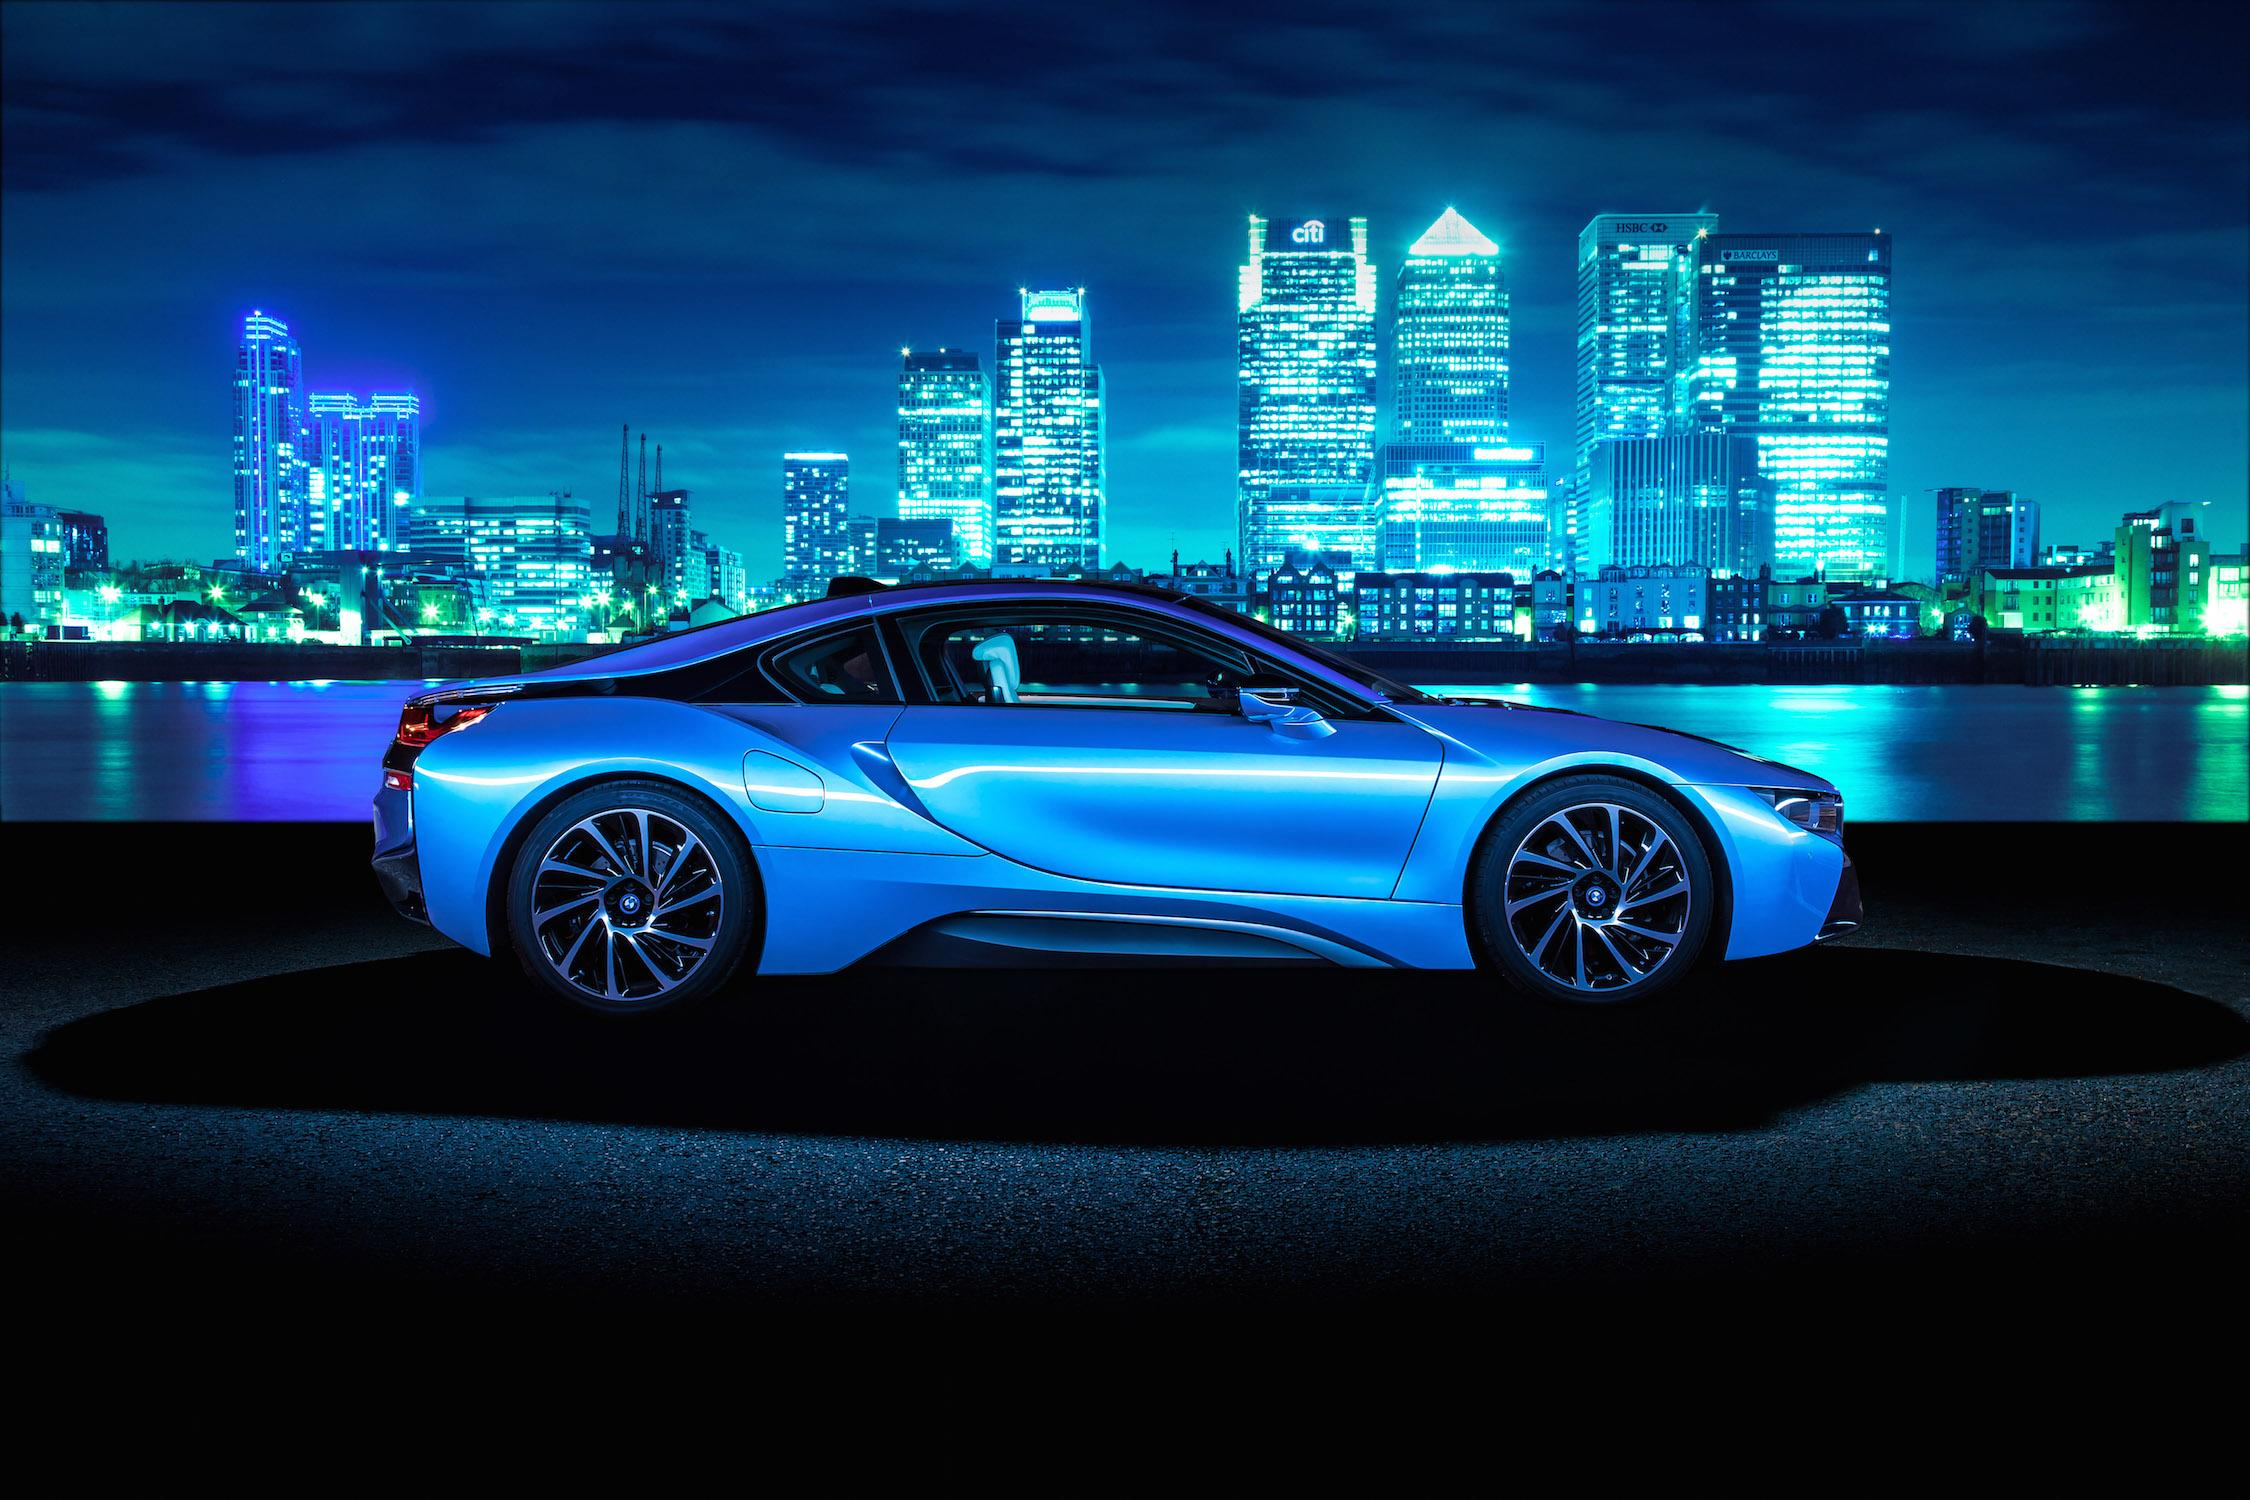 The BMW i8 supercar is officially the best car in the UK right now